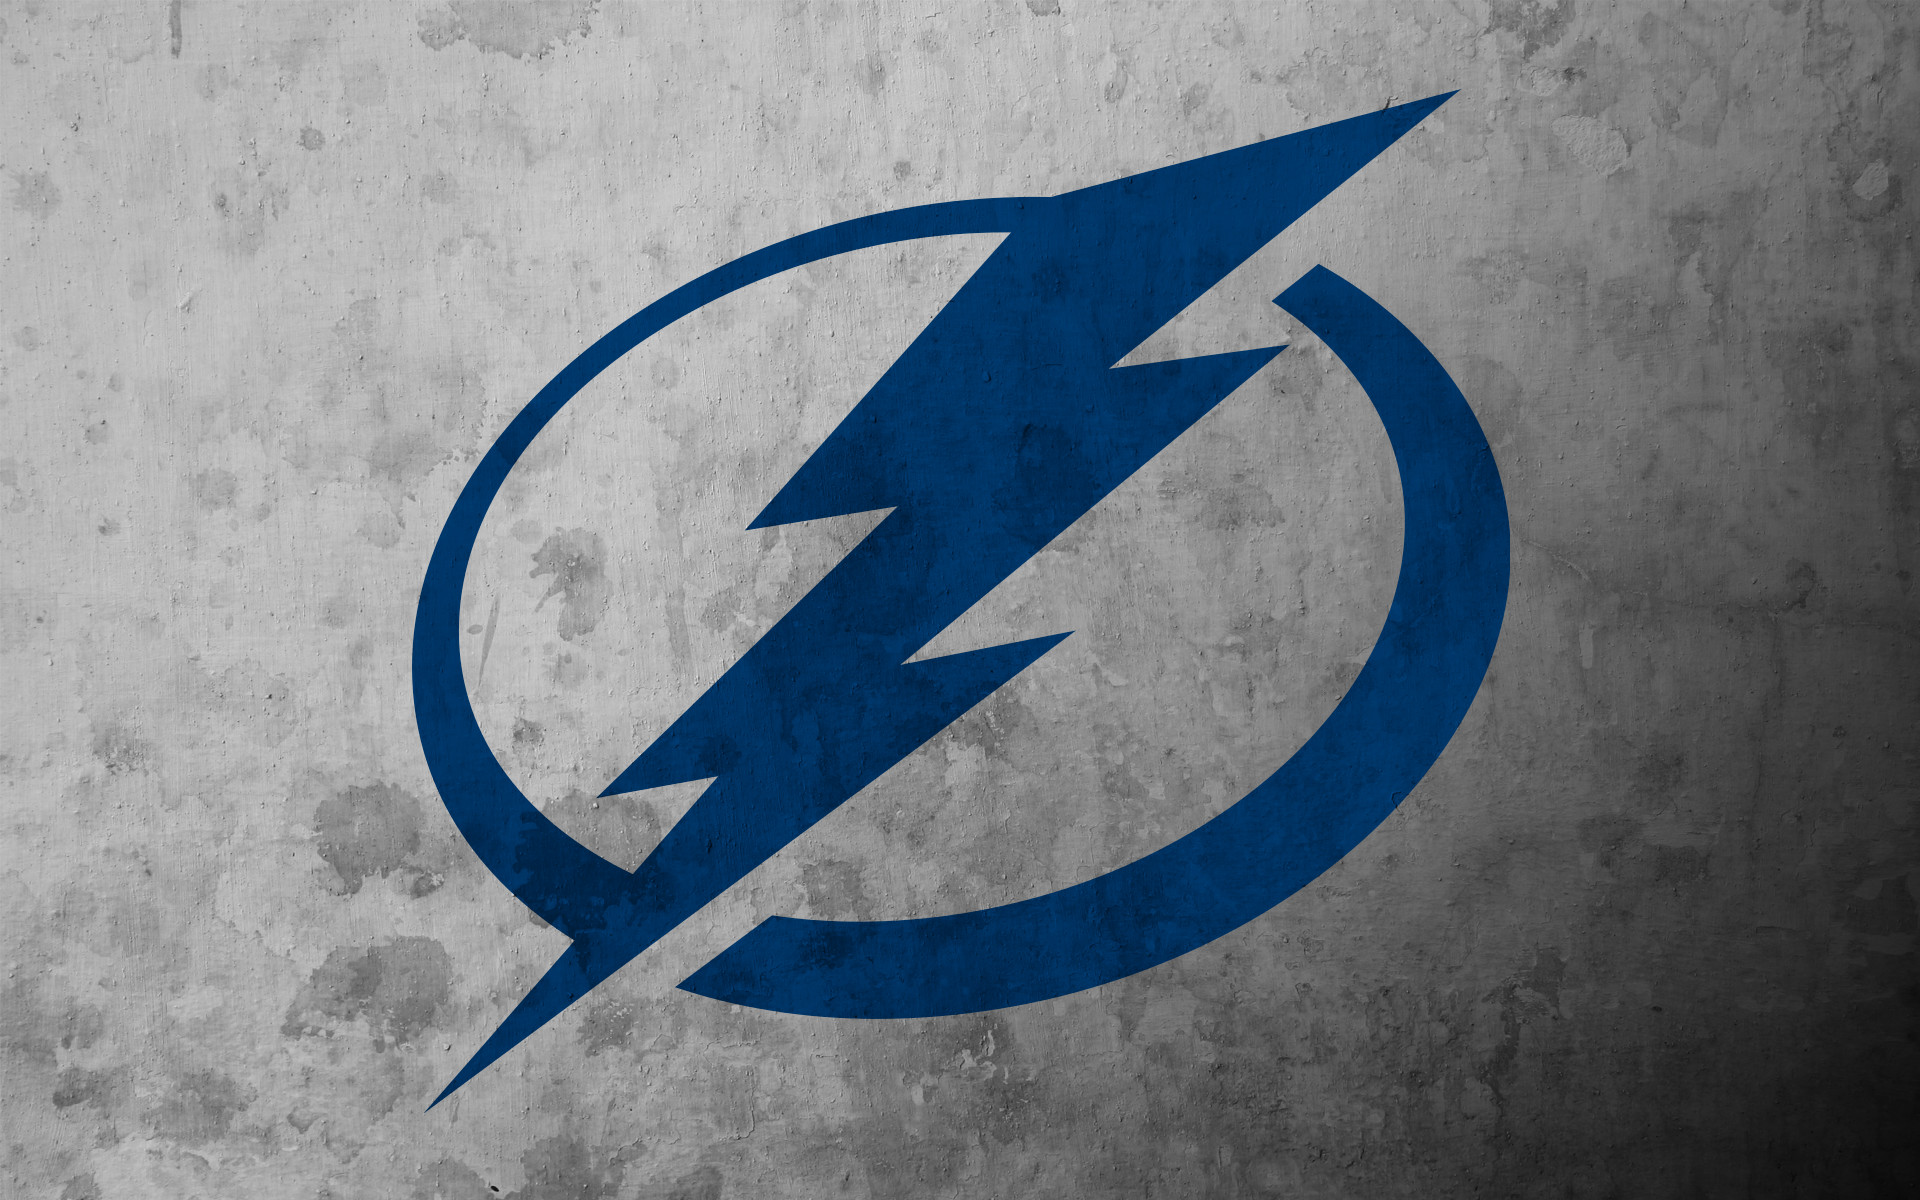 1920x1200 Fine Tampa Bay Lightning 2015 Photos and Pictures, Tampa Bay Lightning 2015  High Resolution Wallpapers